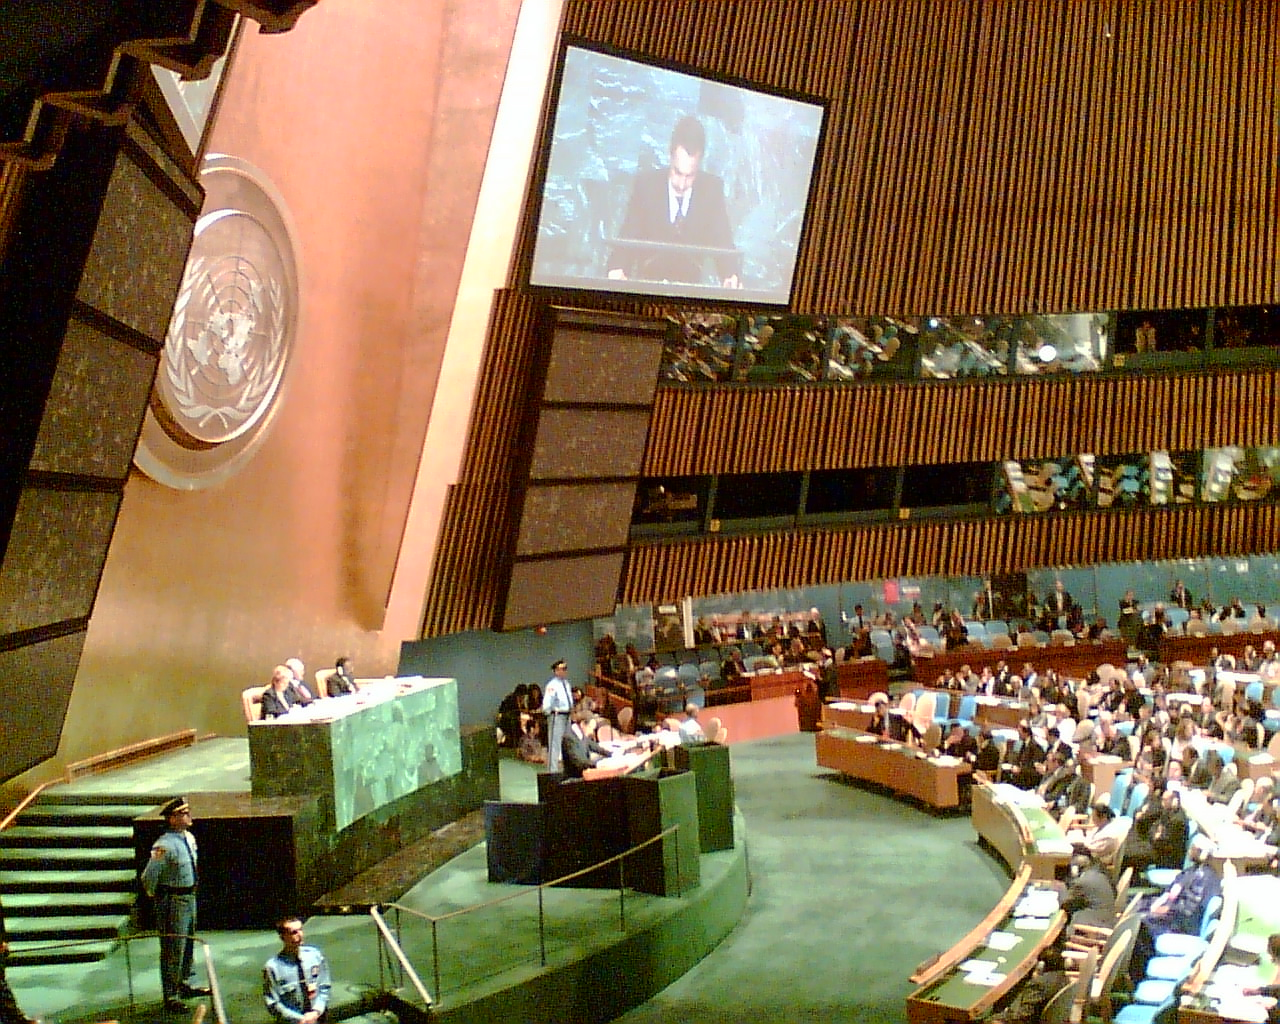 united nations general assembly The 71st session of the united nations general assembly (unga) kicked off tuesday in new york city, as representatives from the un's 193 members met to discuss international issues and prepare the policies necessary to combat the world's most pressing concerns canadian prime minister justin.